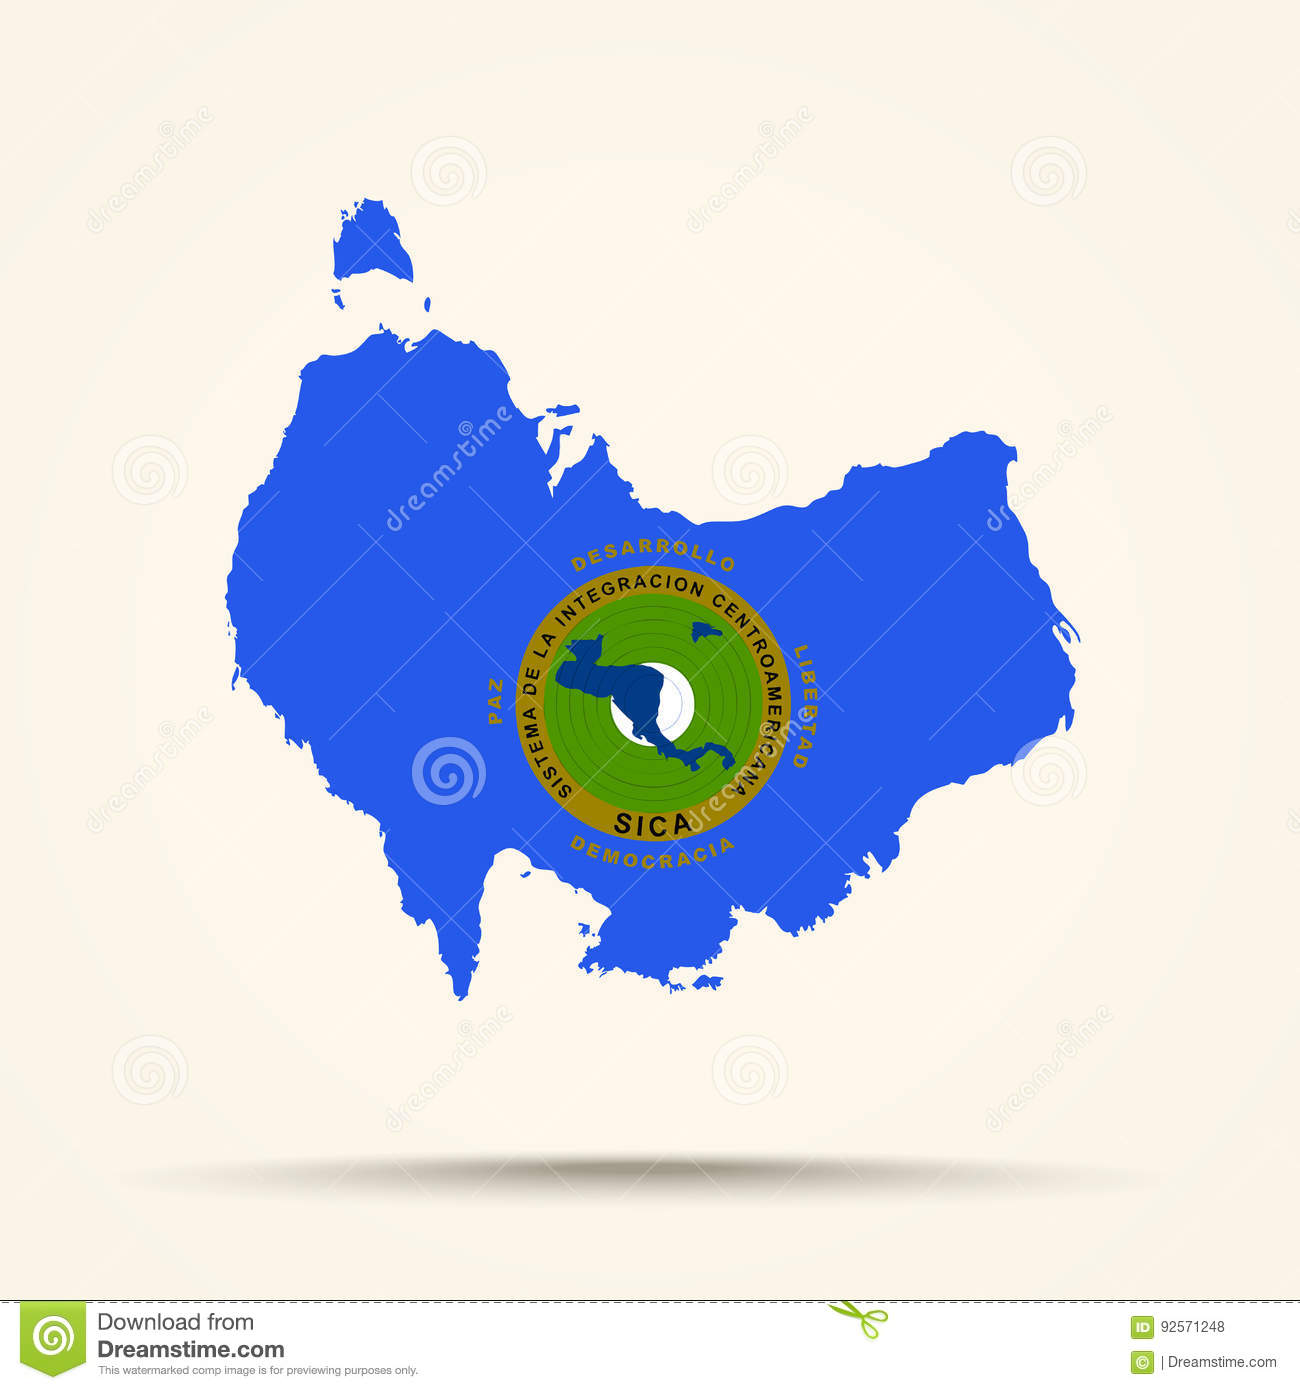 Map of australia in central american integration system flag col download map of australia in central american integration system flag col stock illustration illustration of gumiabroncs Gallery